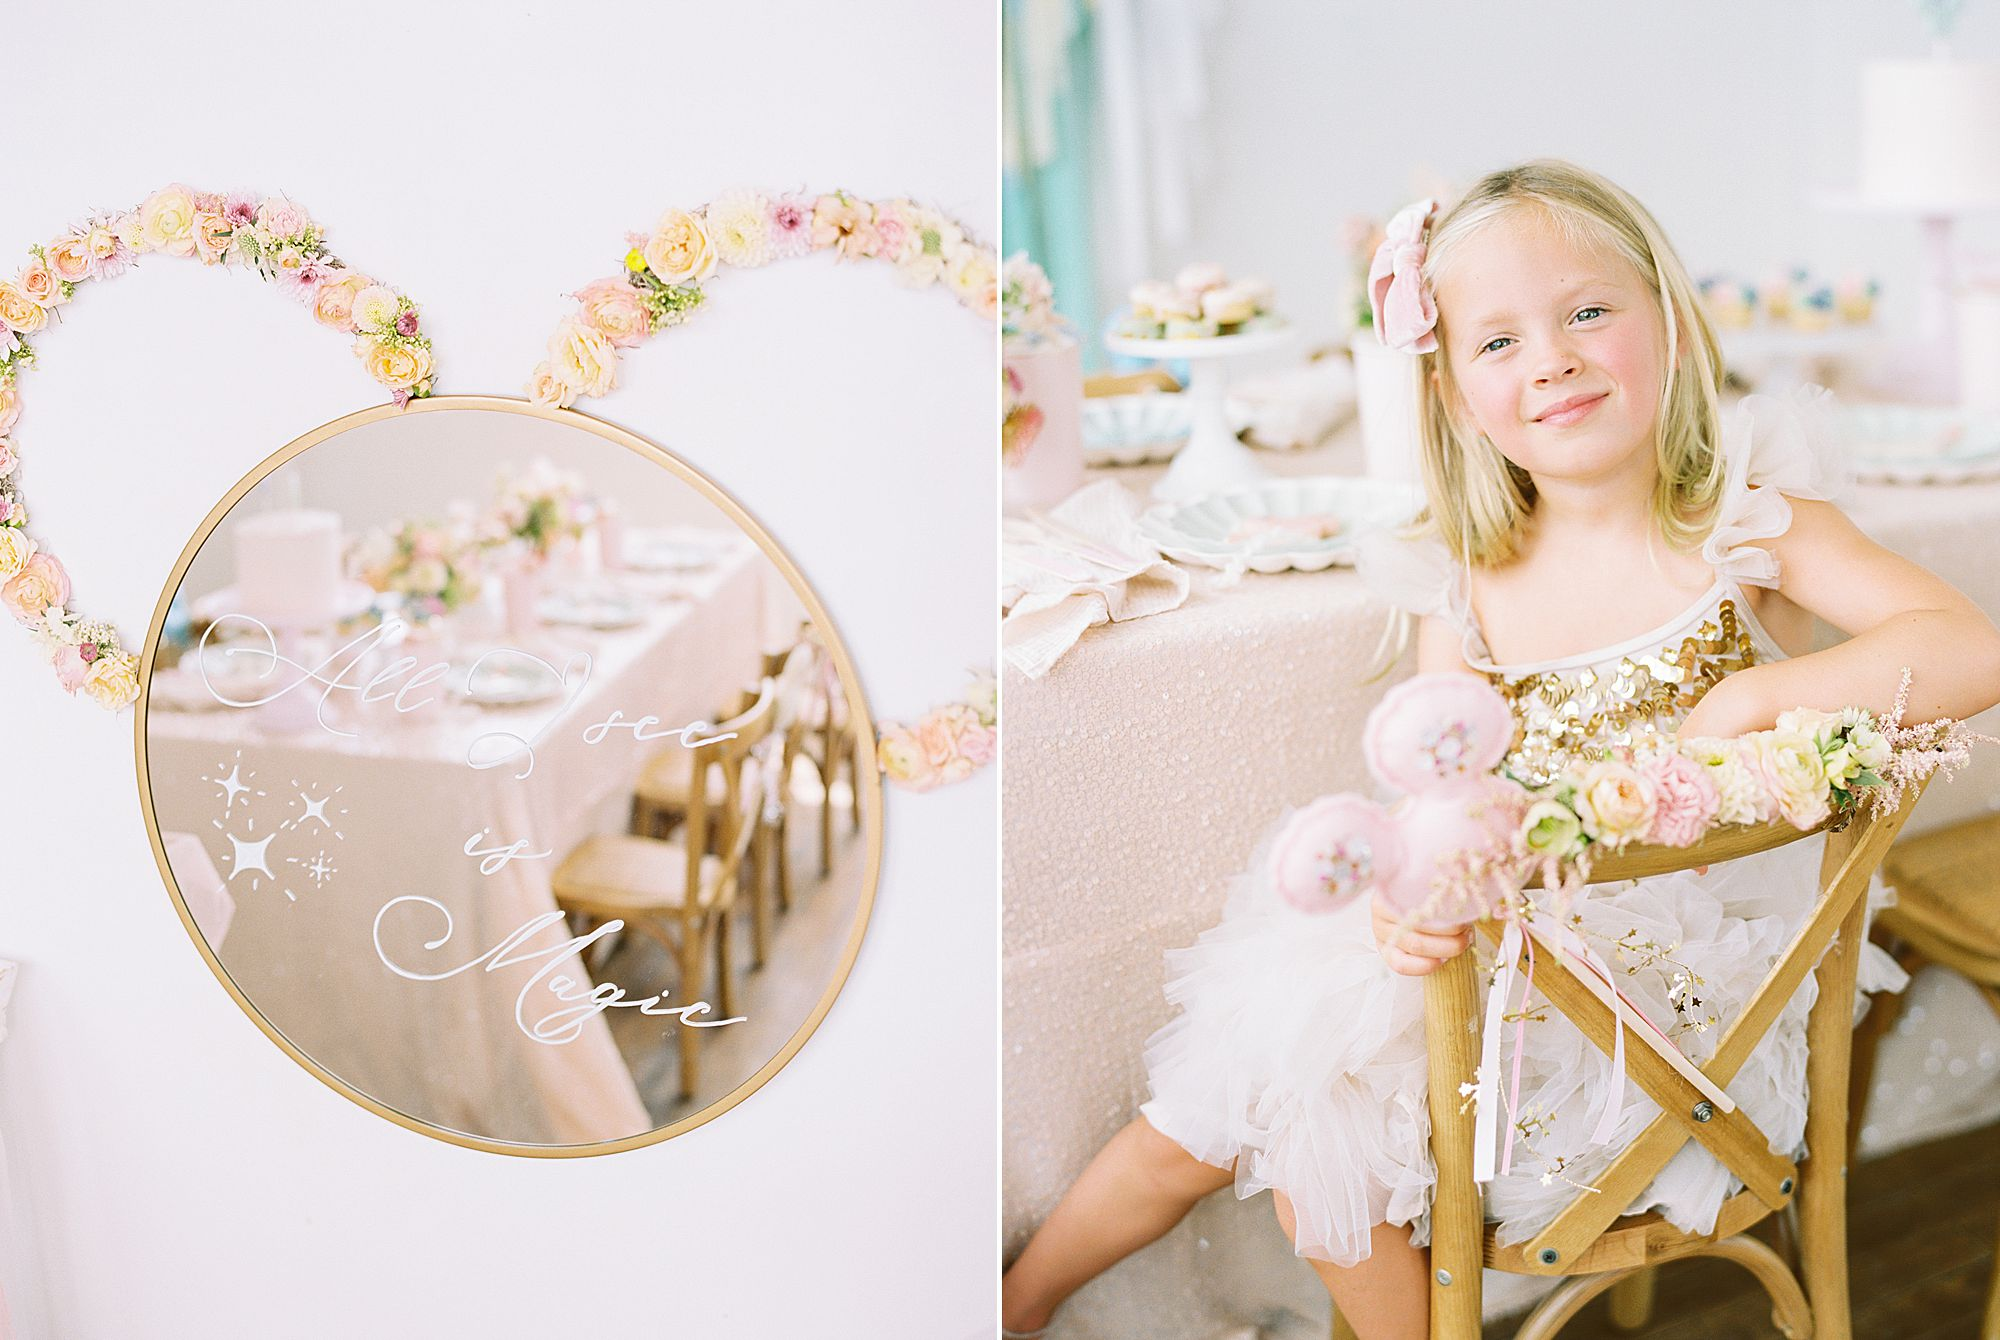 Vintage Disney Birthday Party for Princess Nora's Fourth Birthday - Featured on 100 Layer Cake - Ashley Baumgartner - Parker Grace Events_0018.jpg